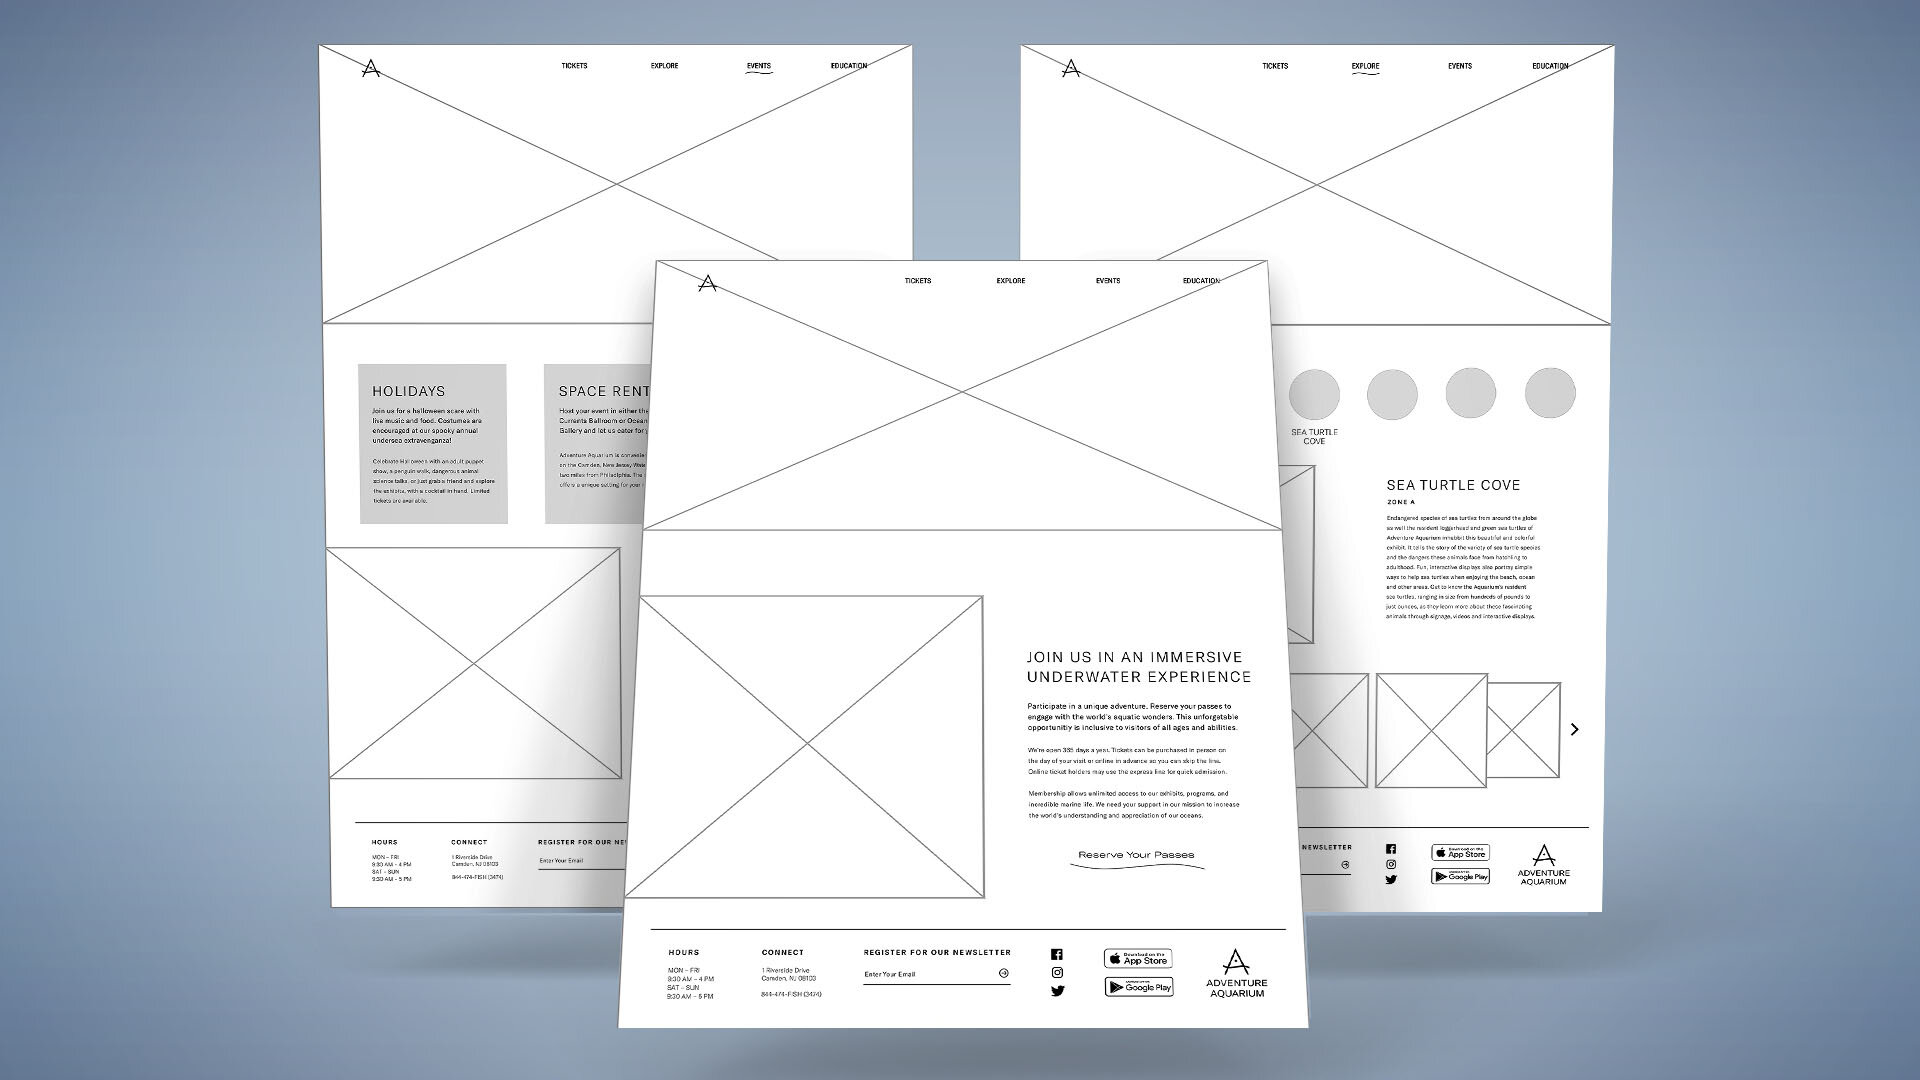 Wireframes aided content organization prior to visual design.